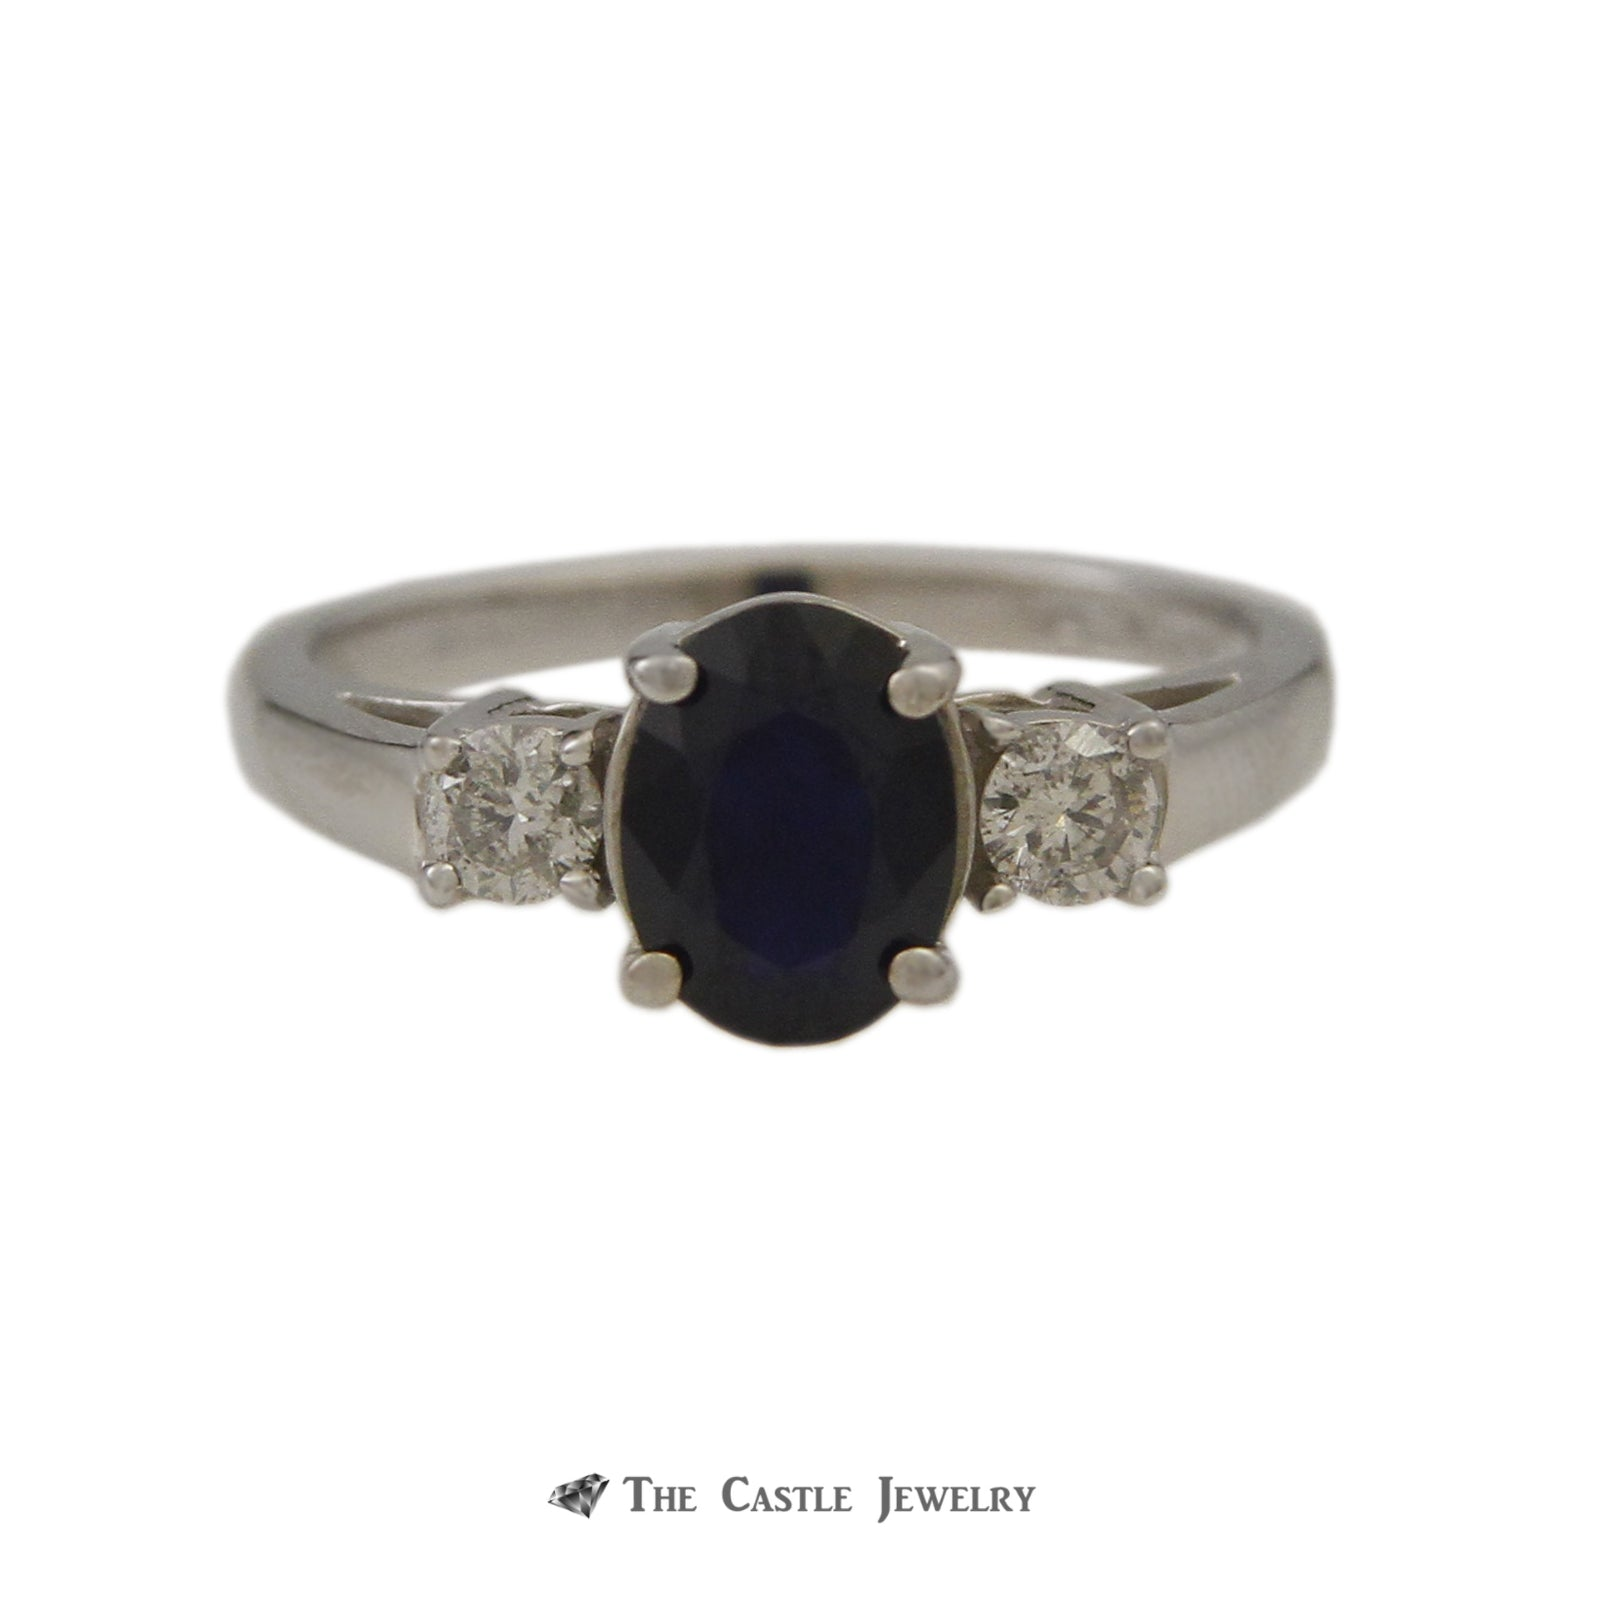 Oval Sapphire Gemstone Ring w/ Round Diamond Sides & Cathedral Mount in 14k